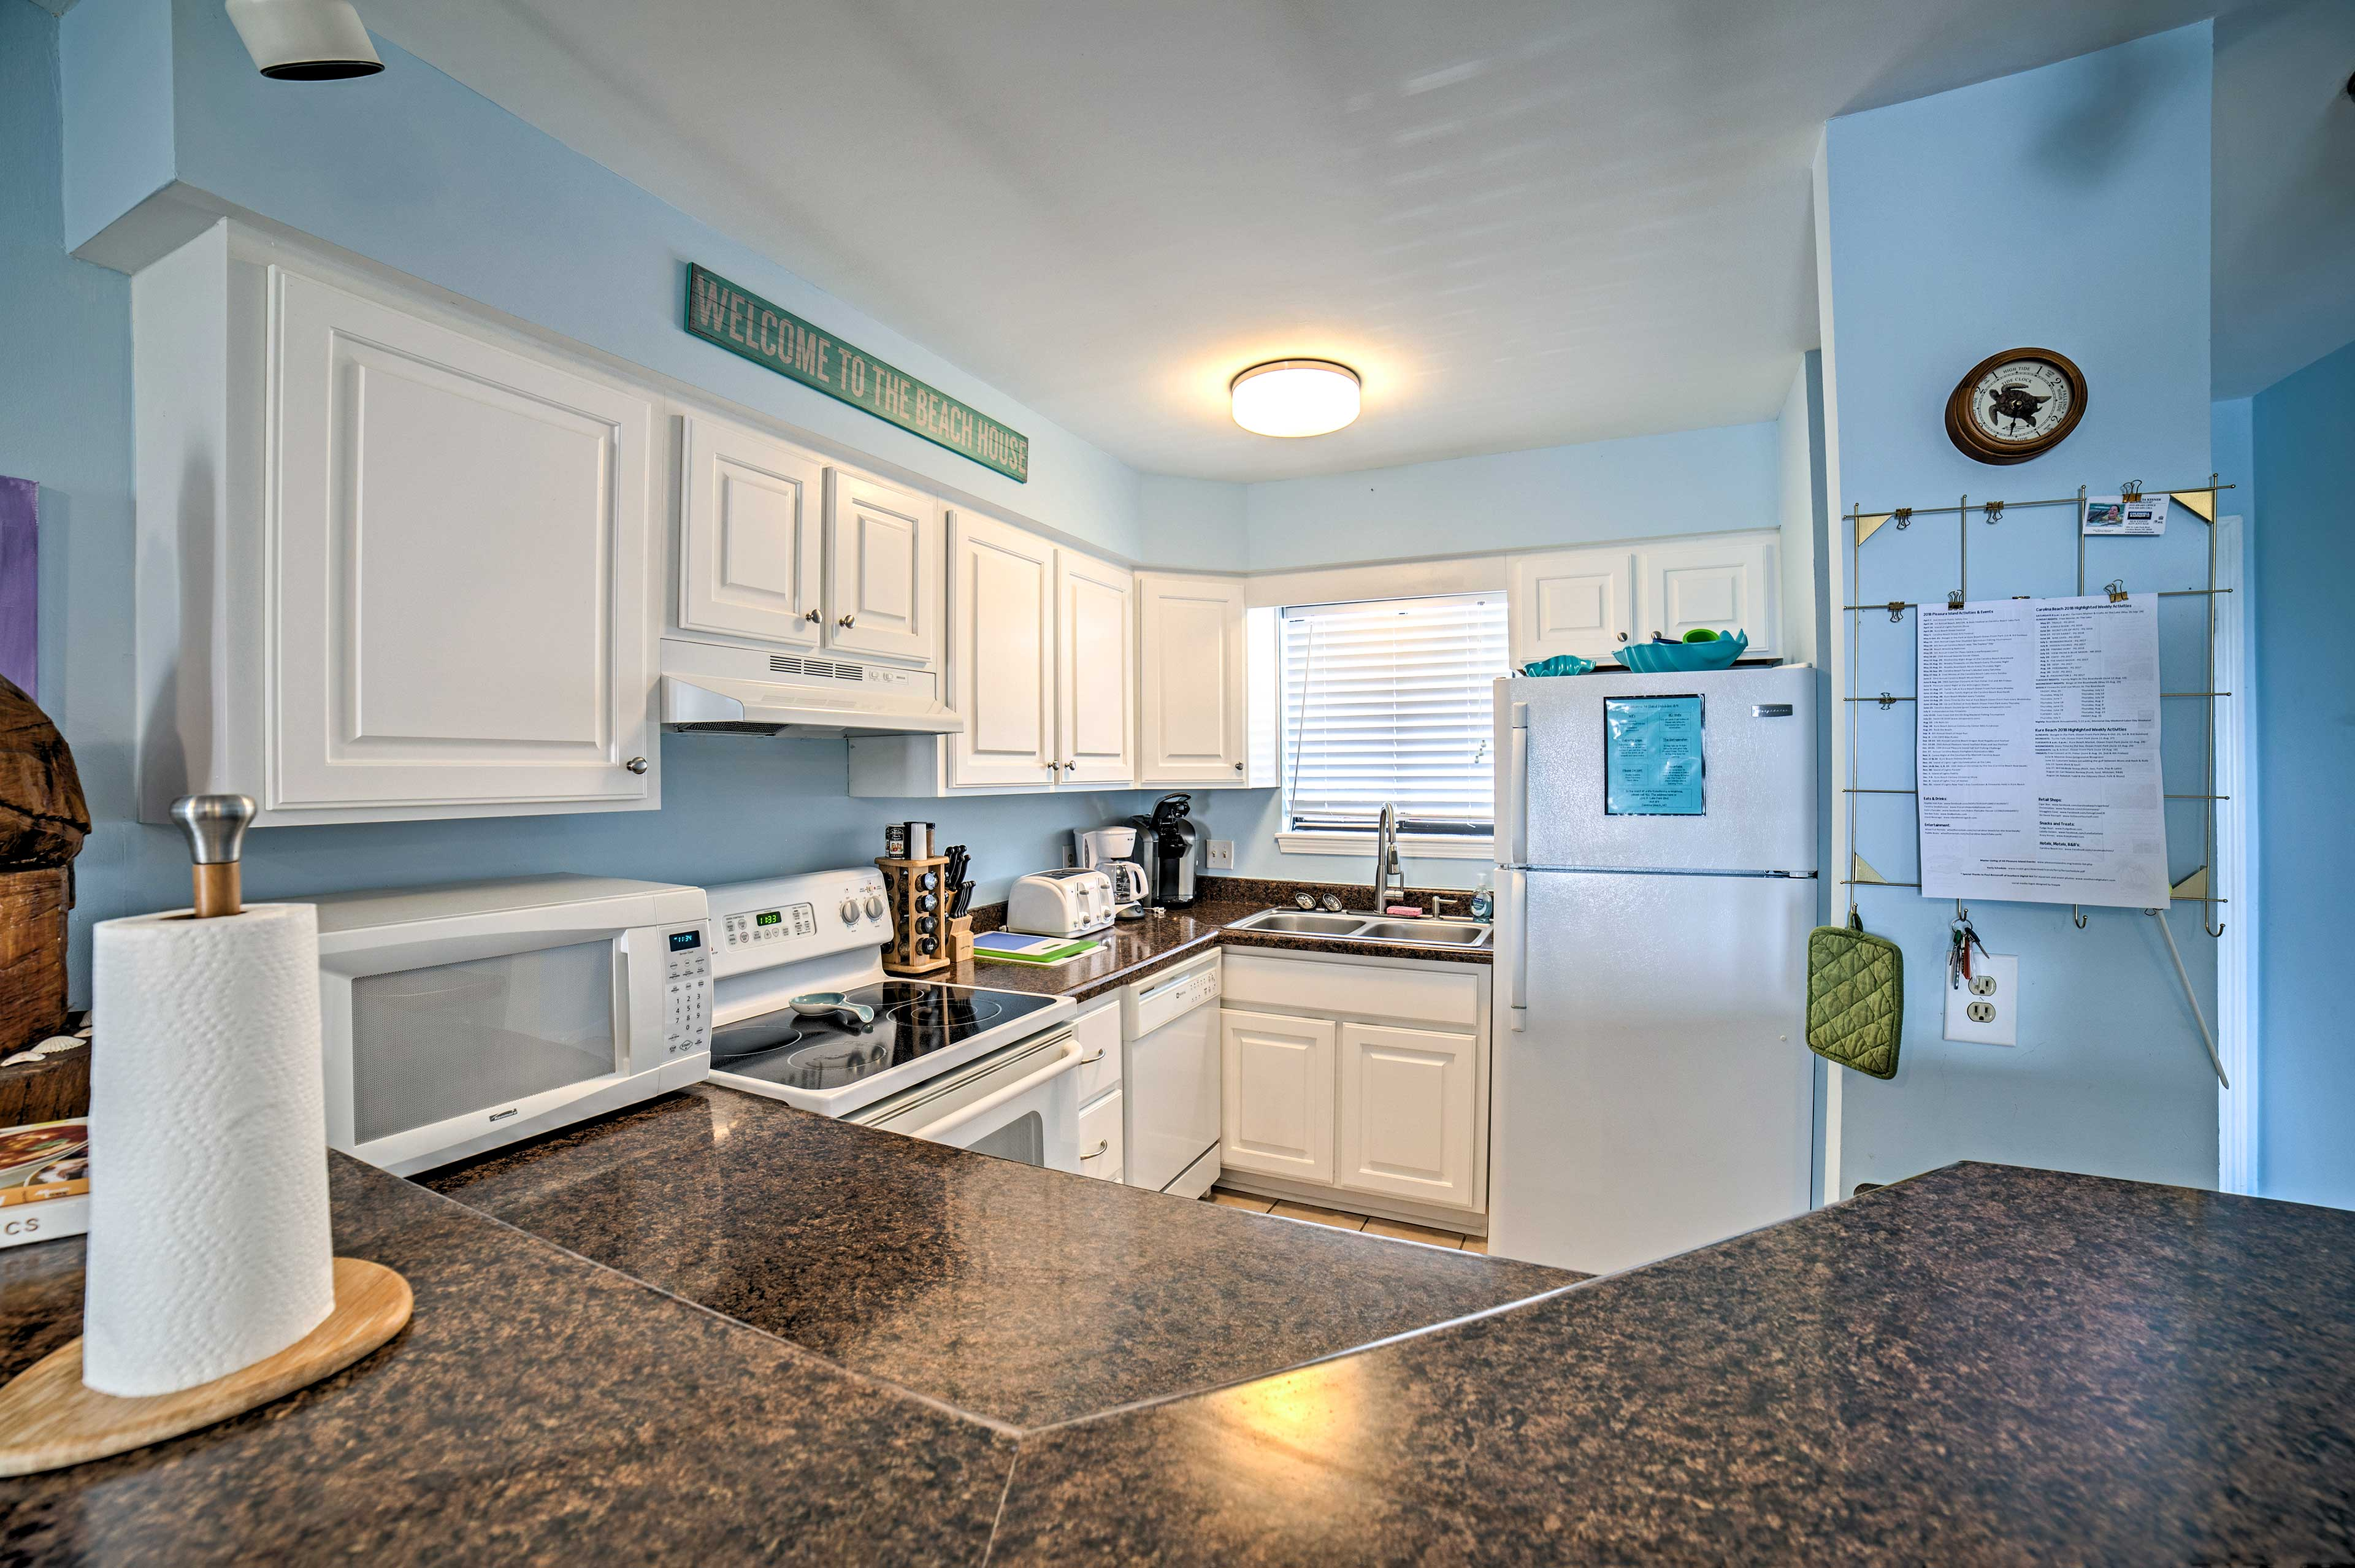 The kitchen comes fully equipped to meet all of your home-cooking needs.